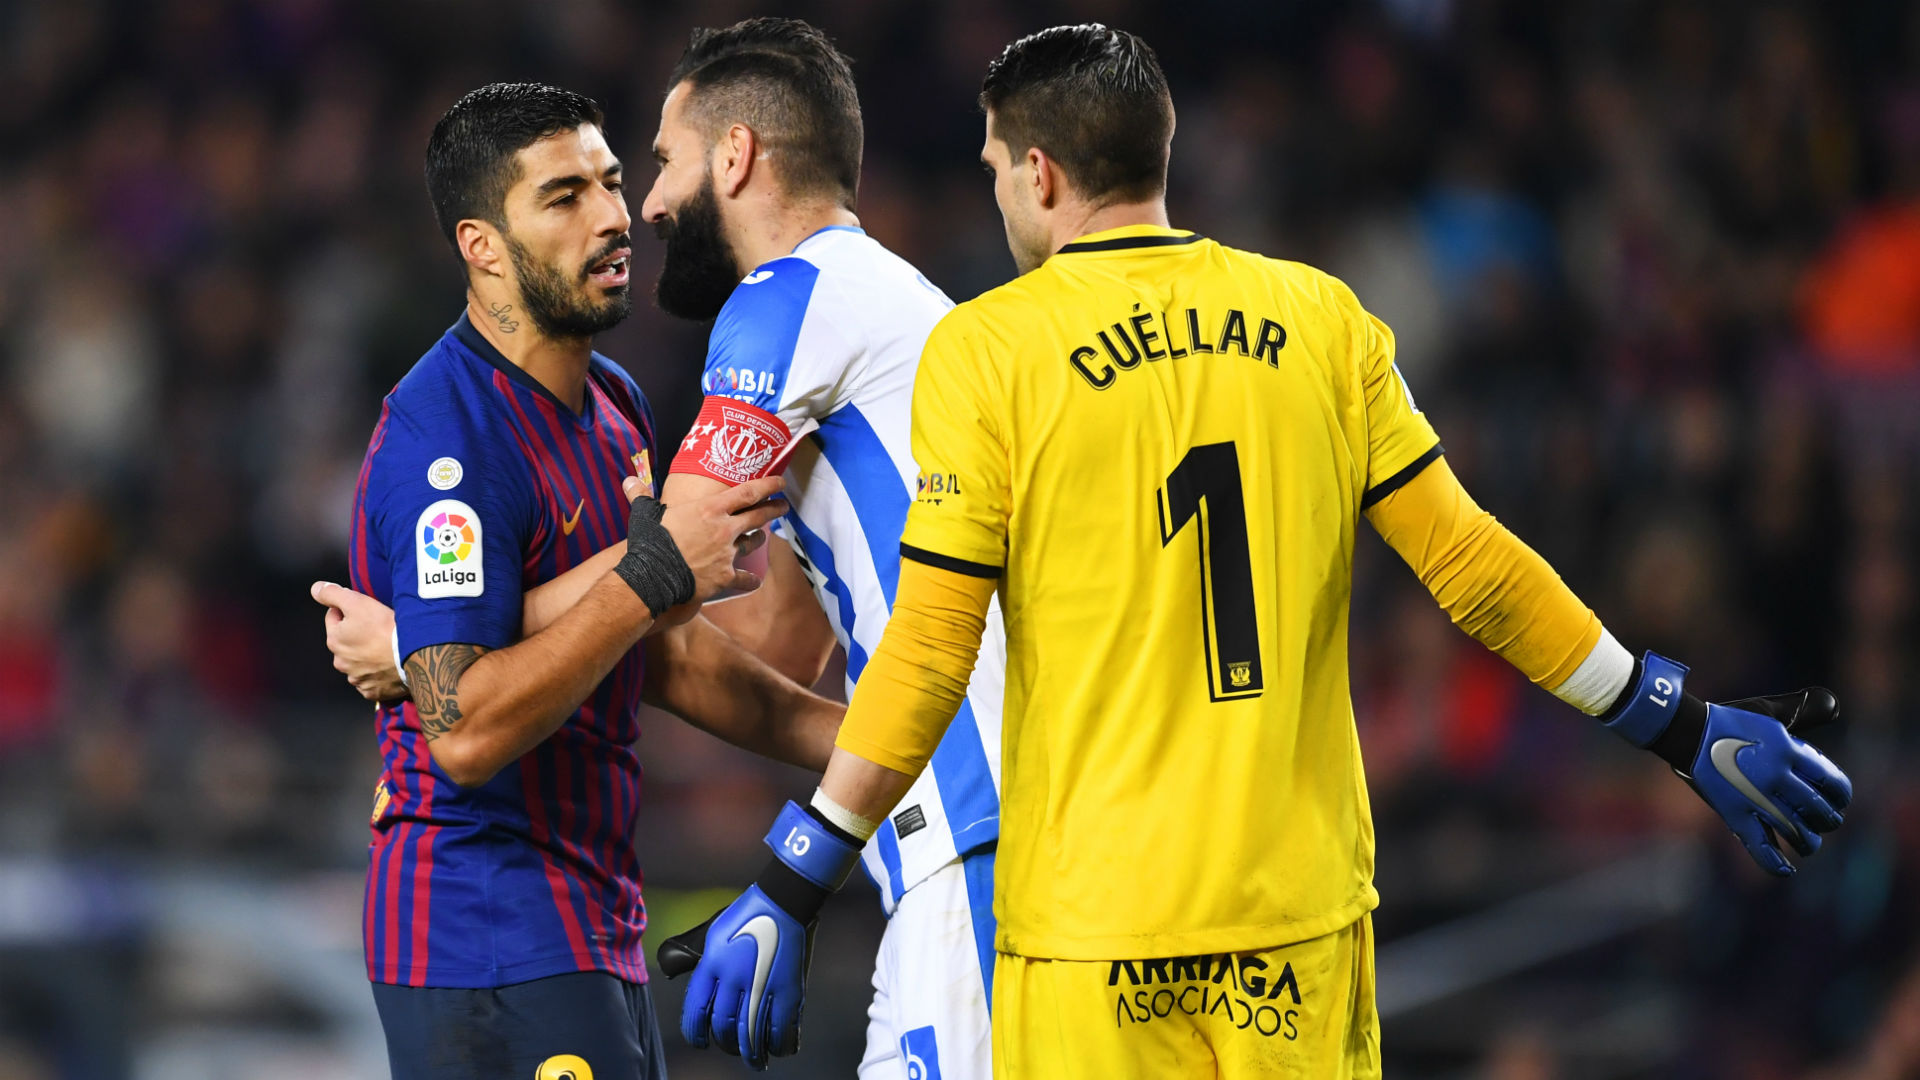 It was a clear goal – Valverde dismisses Barca VAR controversy